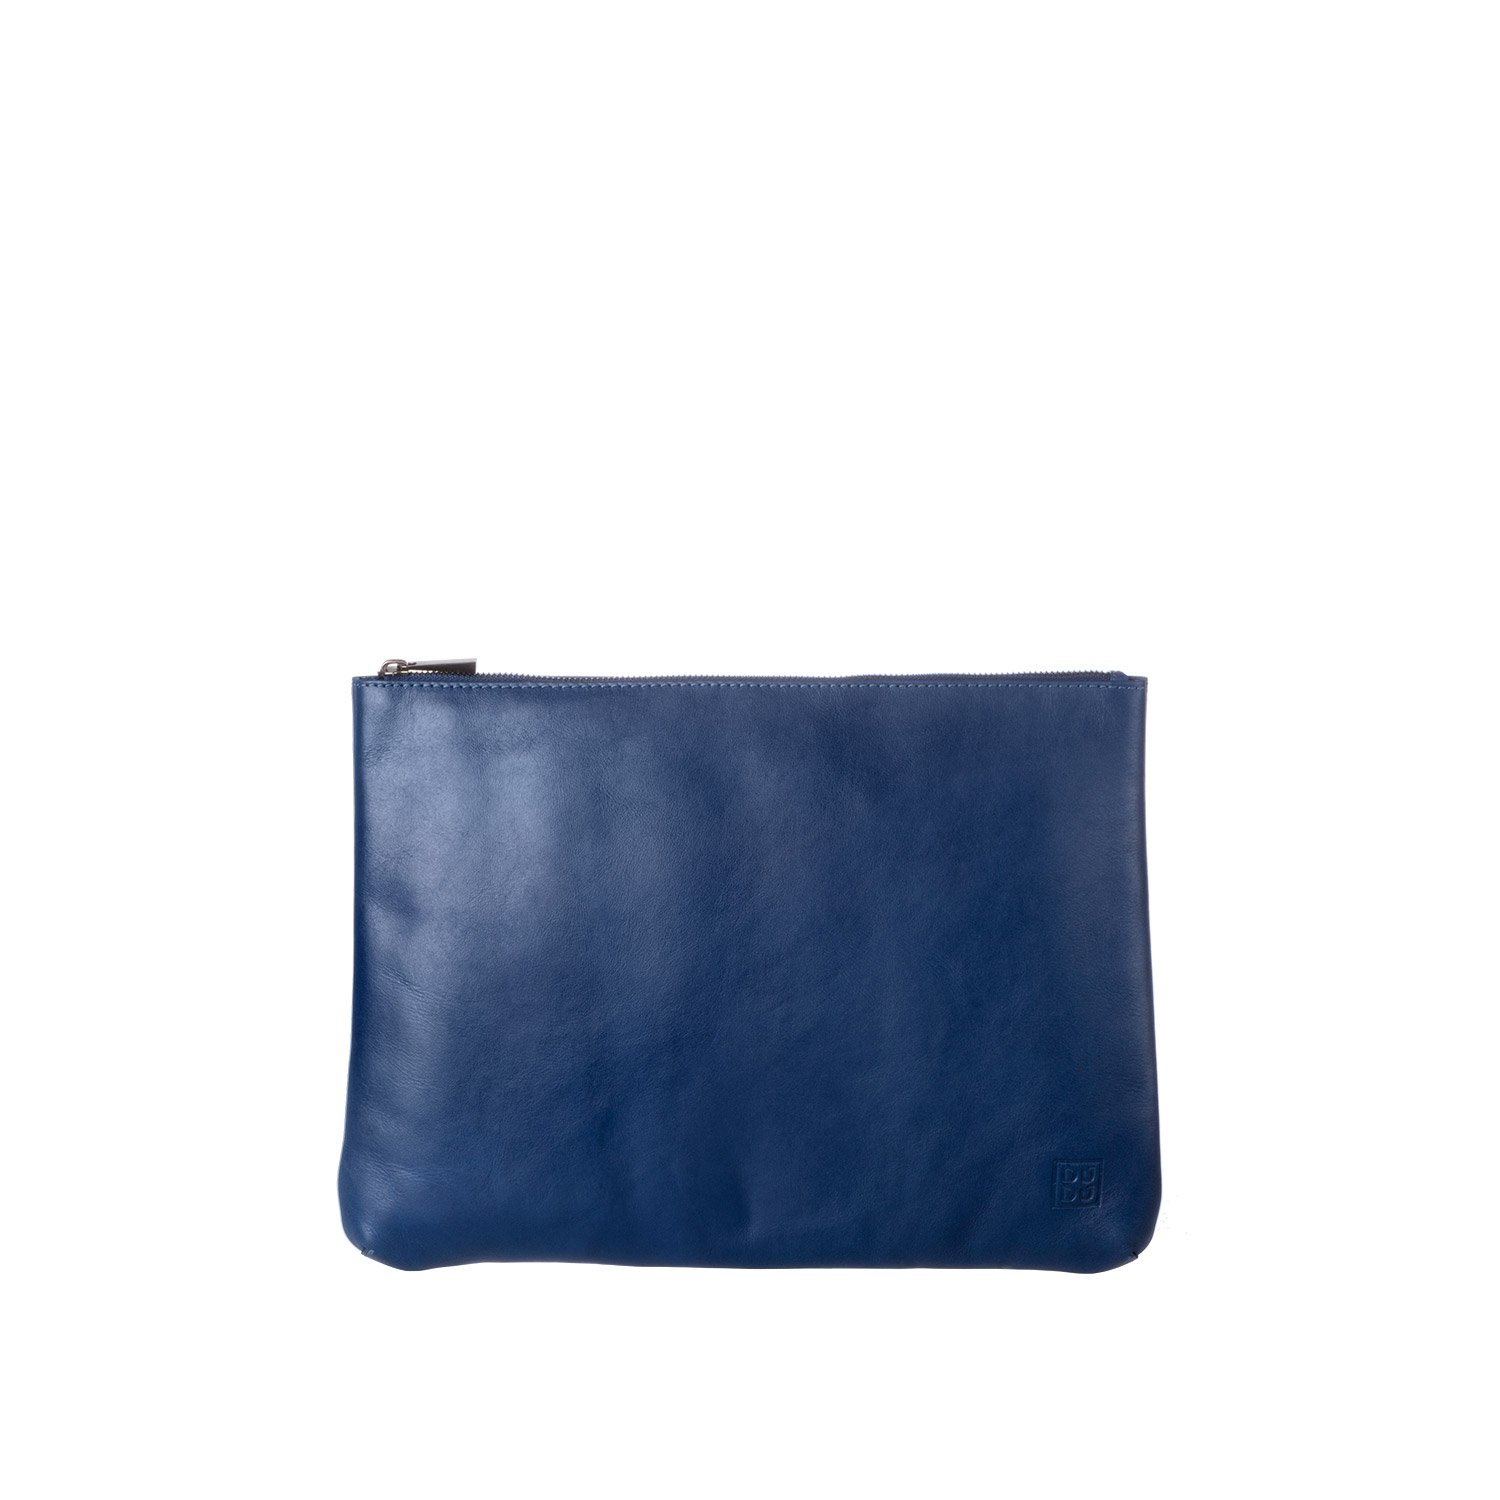 DUDU Clutch Bag Purse with Handle for ladies and men in Real Leather Slim & Large Handbag with Zipper closure - Isa - Blue